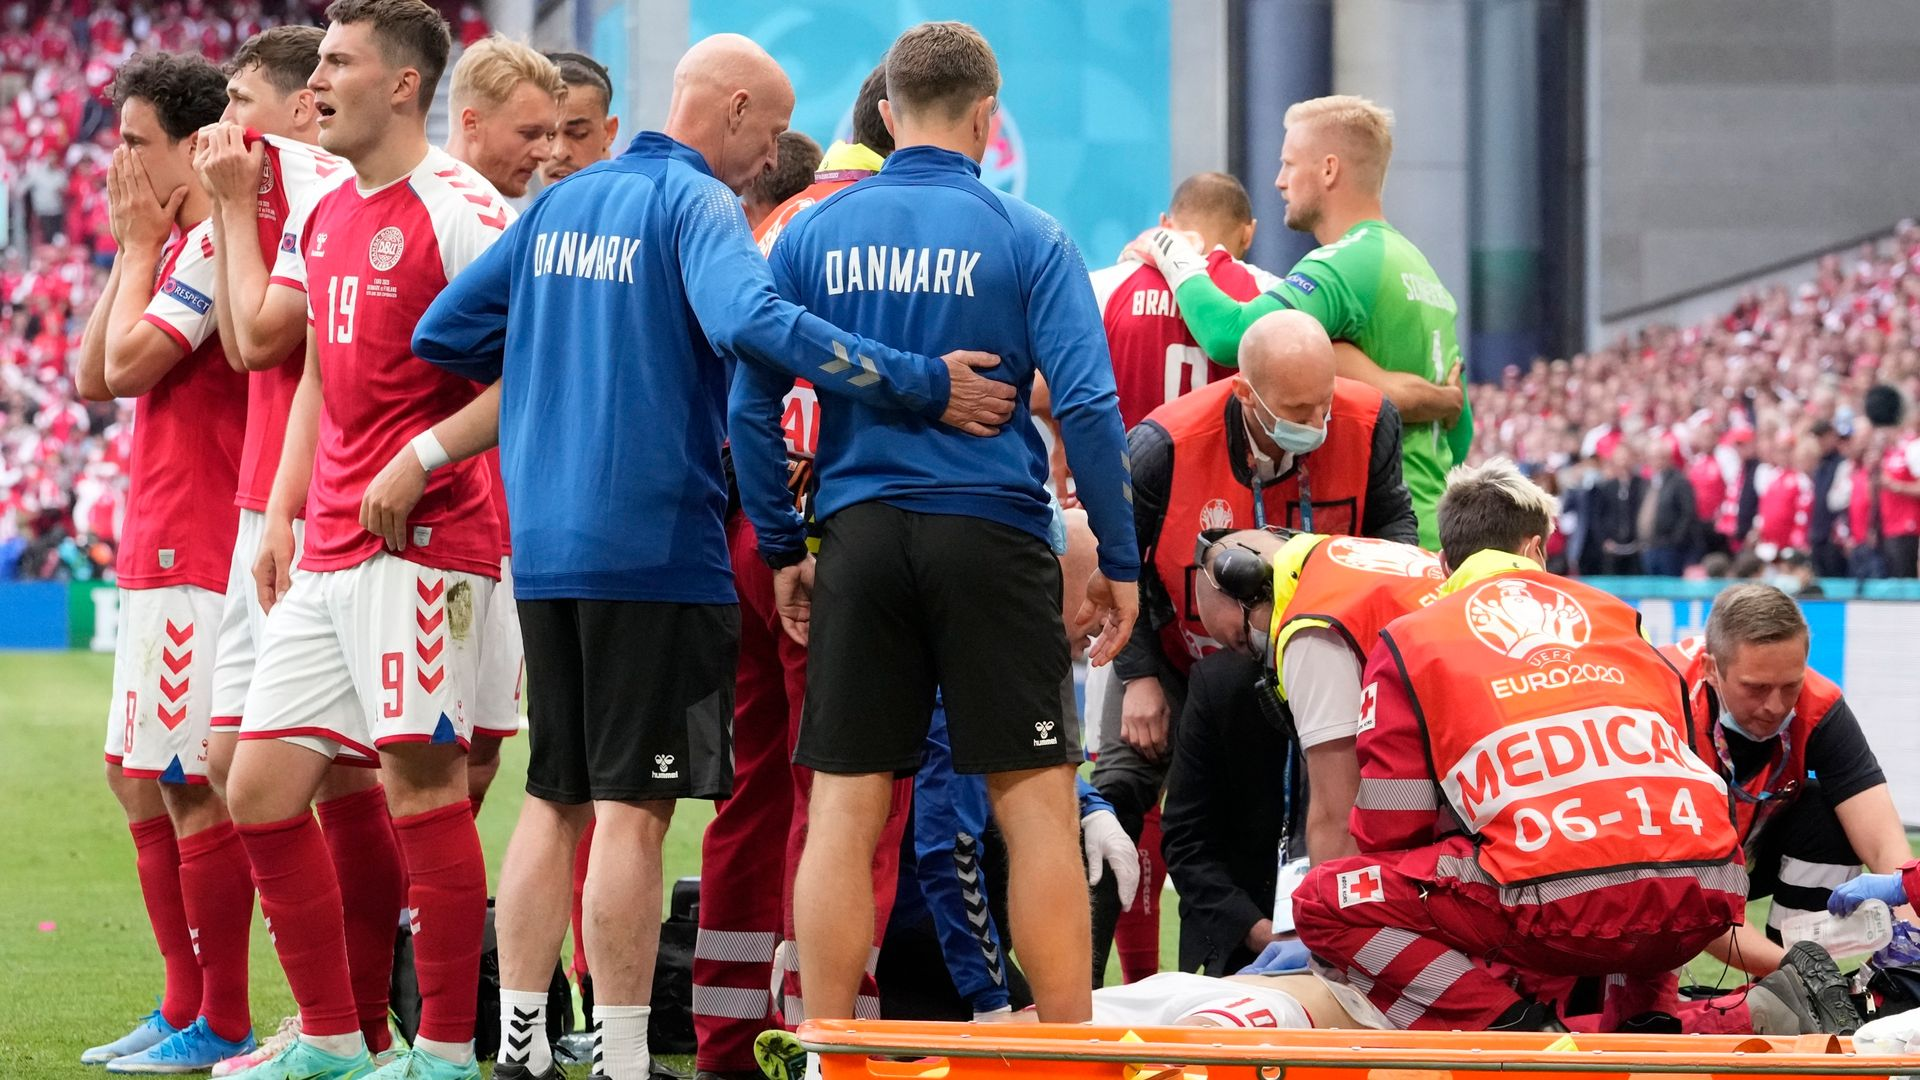 PL to donate defibrillators to grassroots football